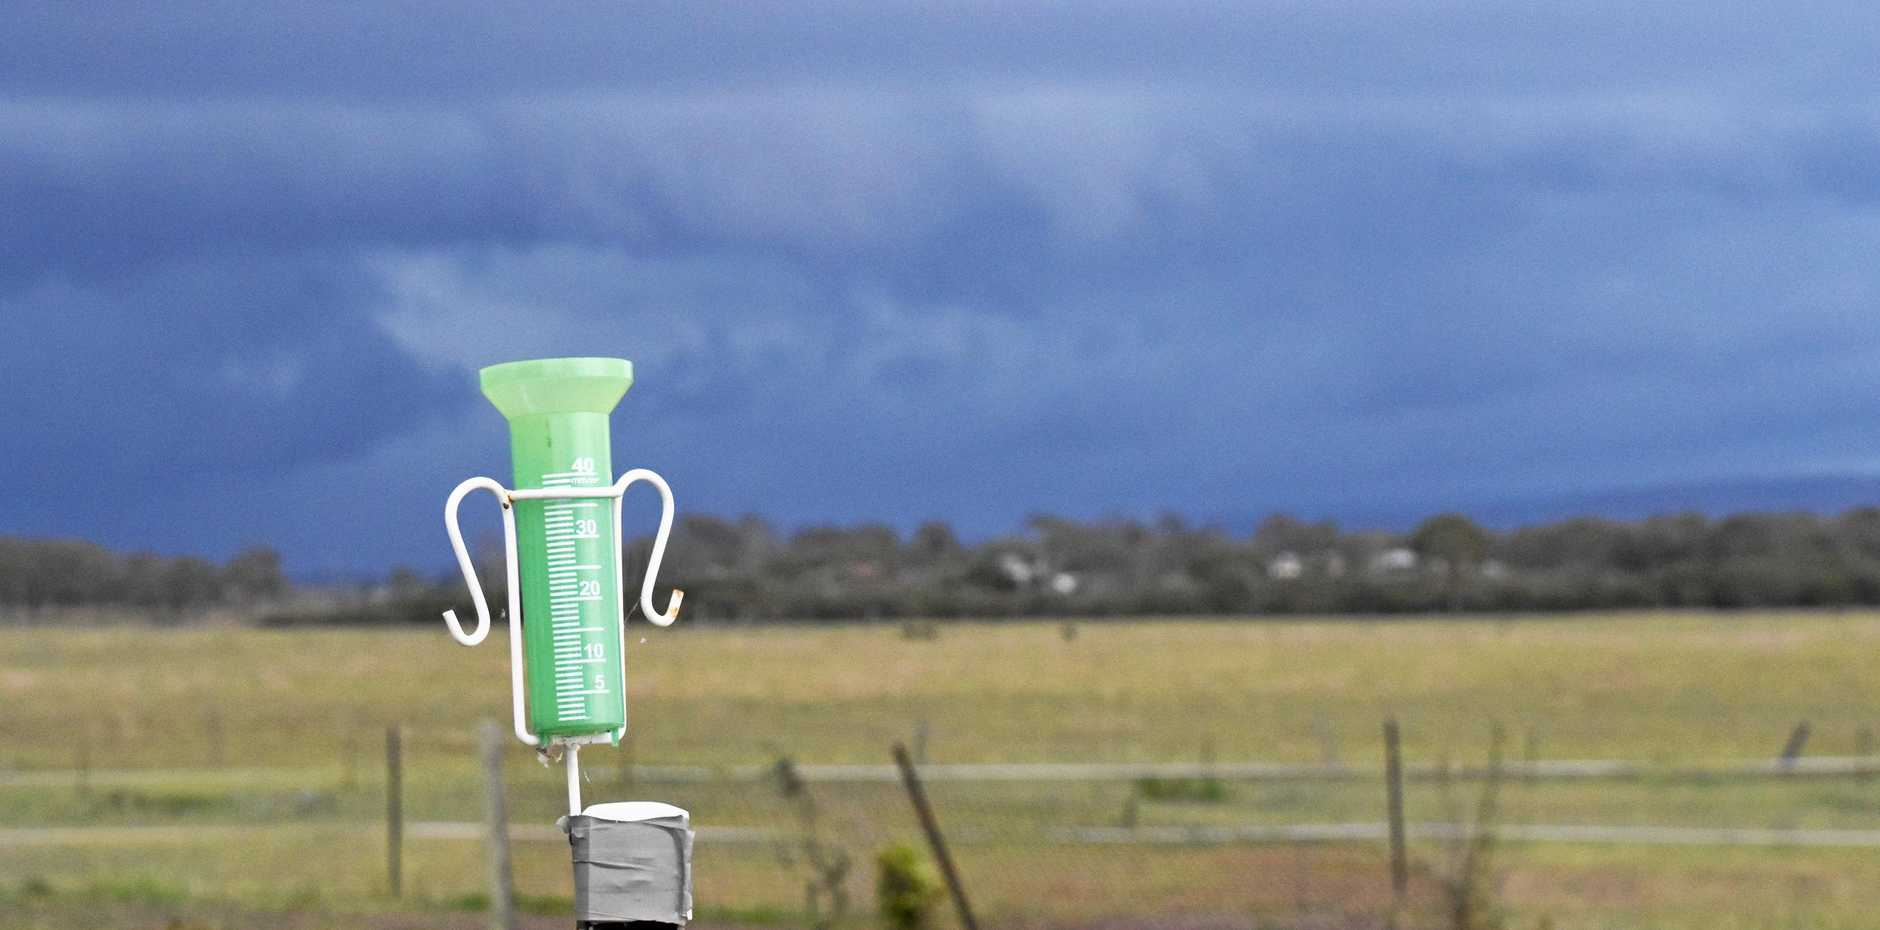 Warwick's rain gauge could feel that long forgotten touch of water later this week.